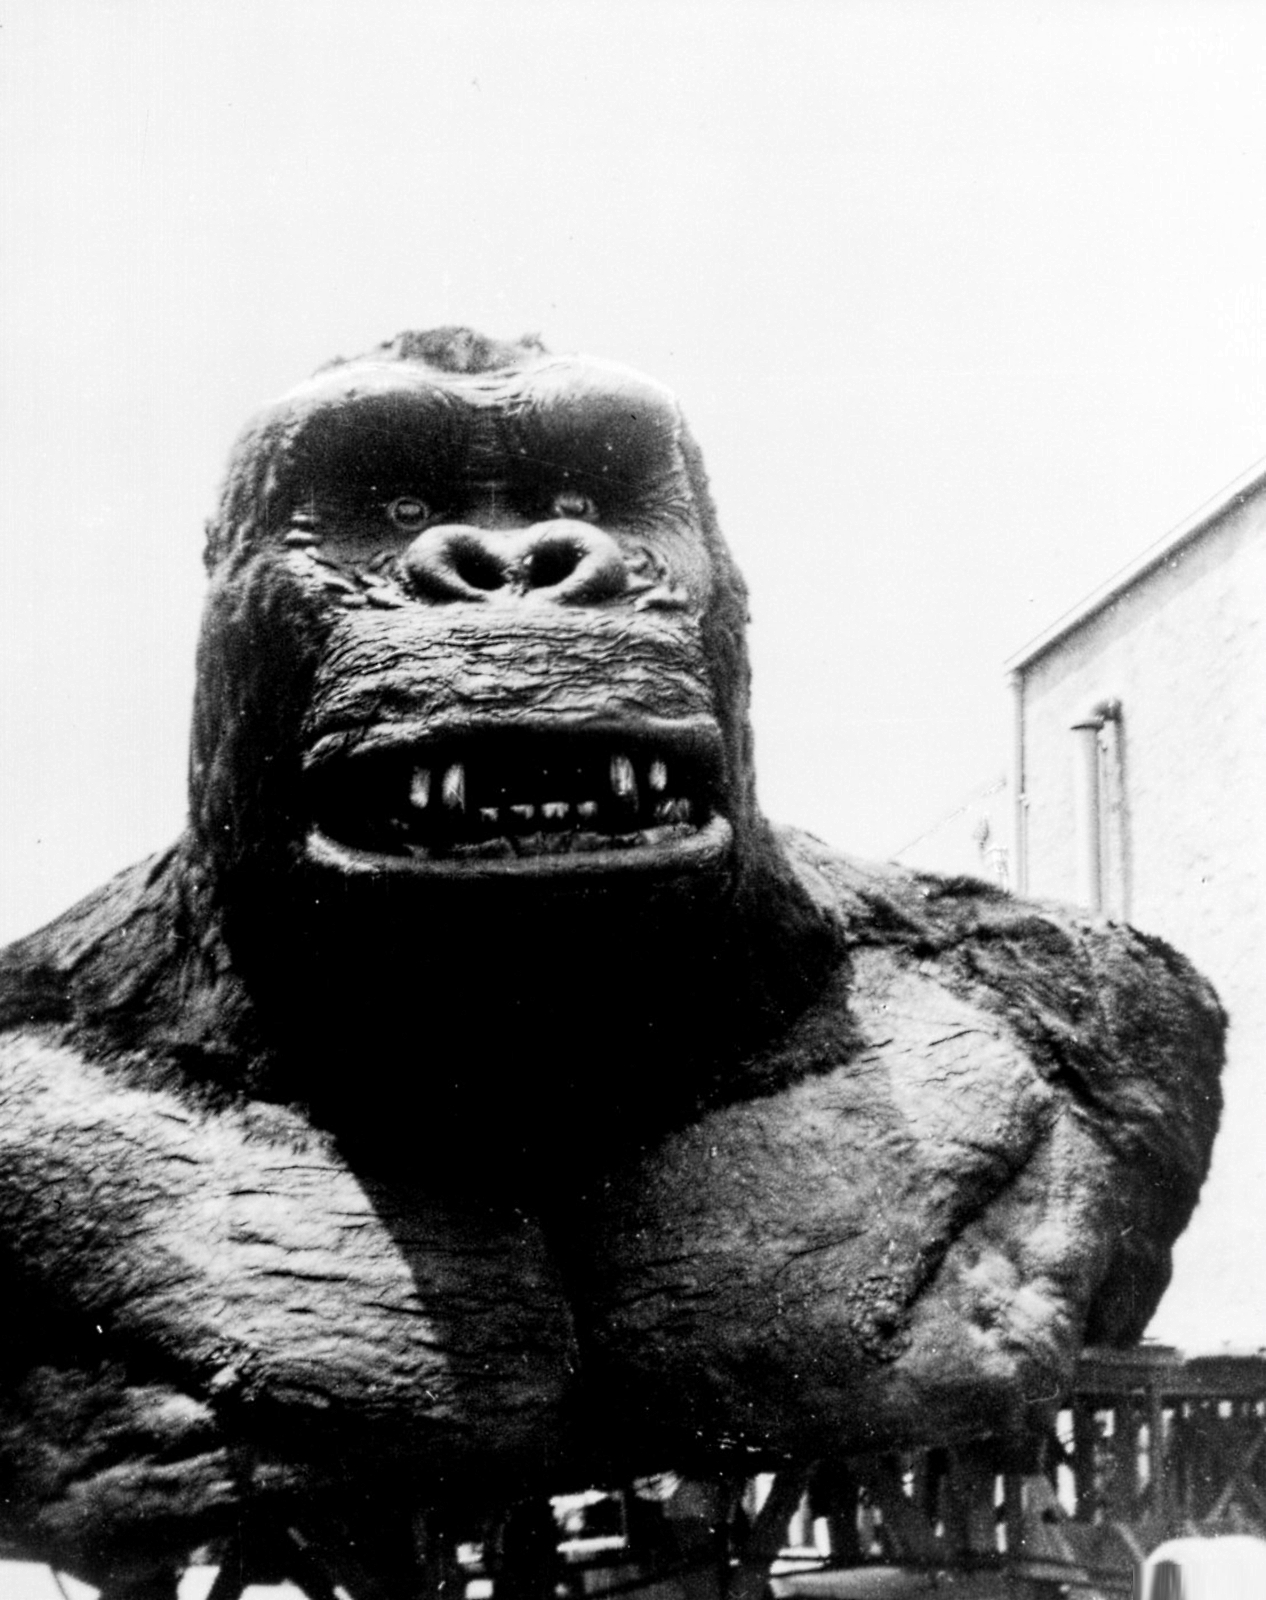 the role of special effects in the movie king kong by merian c cooper July 4, 2016 november 11, 2016 ian farrington king kong 1933, 8/10, black and white, ernest b schoedsack, king kong, merian c cooper a section-by-section review of the 1933 classic warning: there are spoilers ahead.